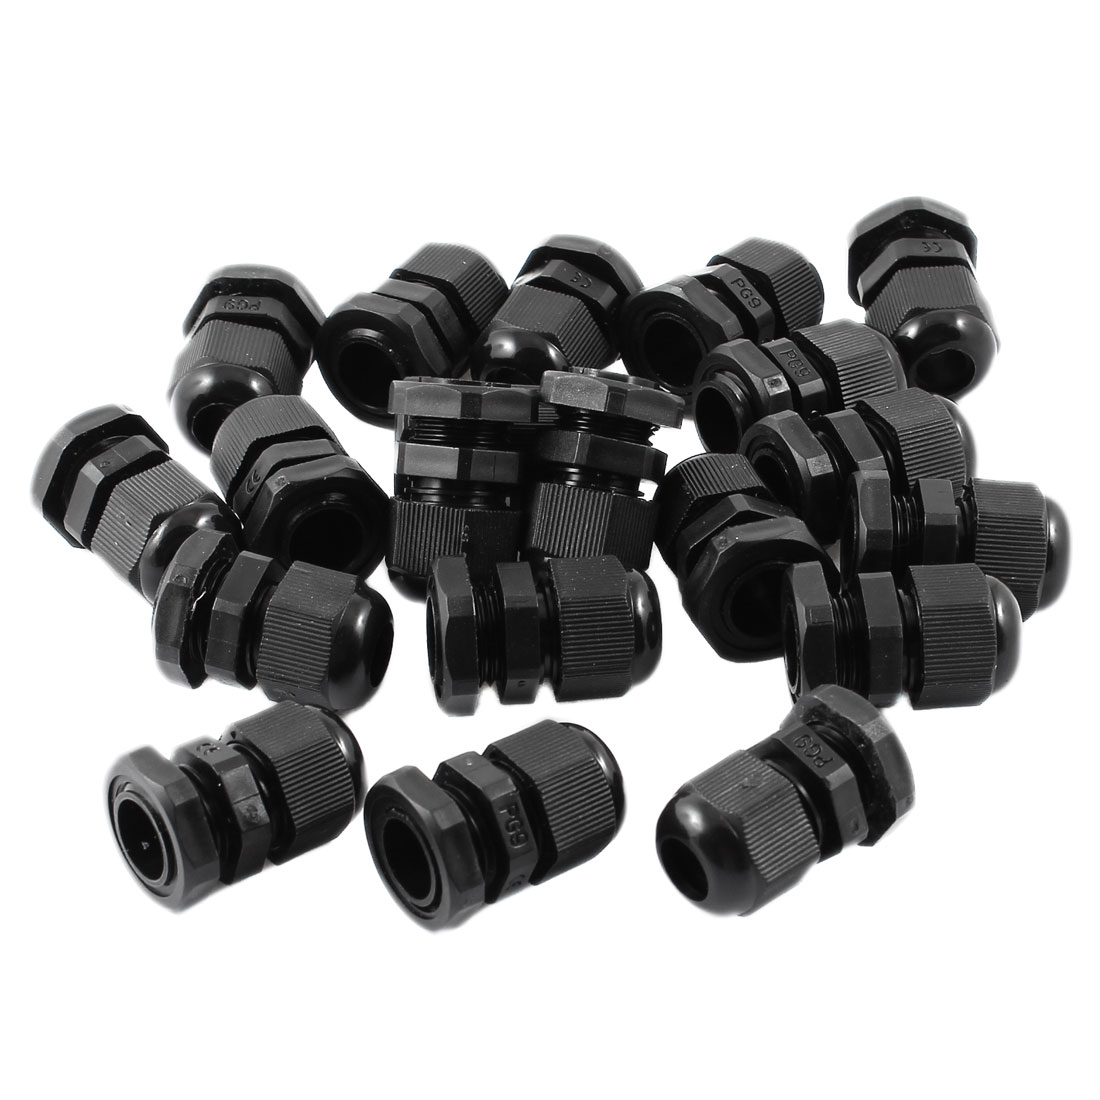 20 Pcs PG9 Black Plastic Glands Connectors for 4mm to 8mm Cable